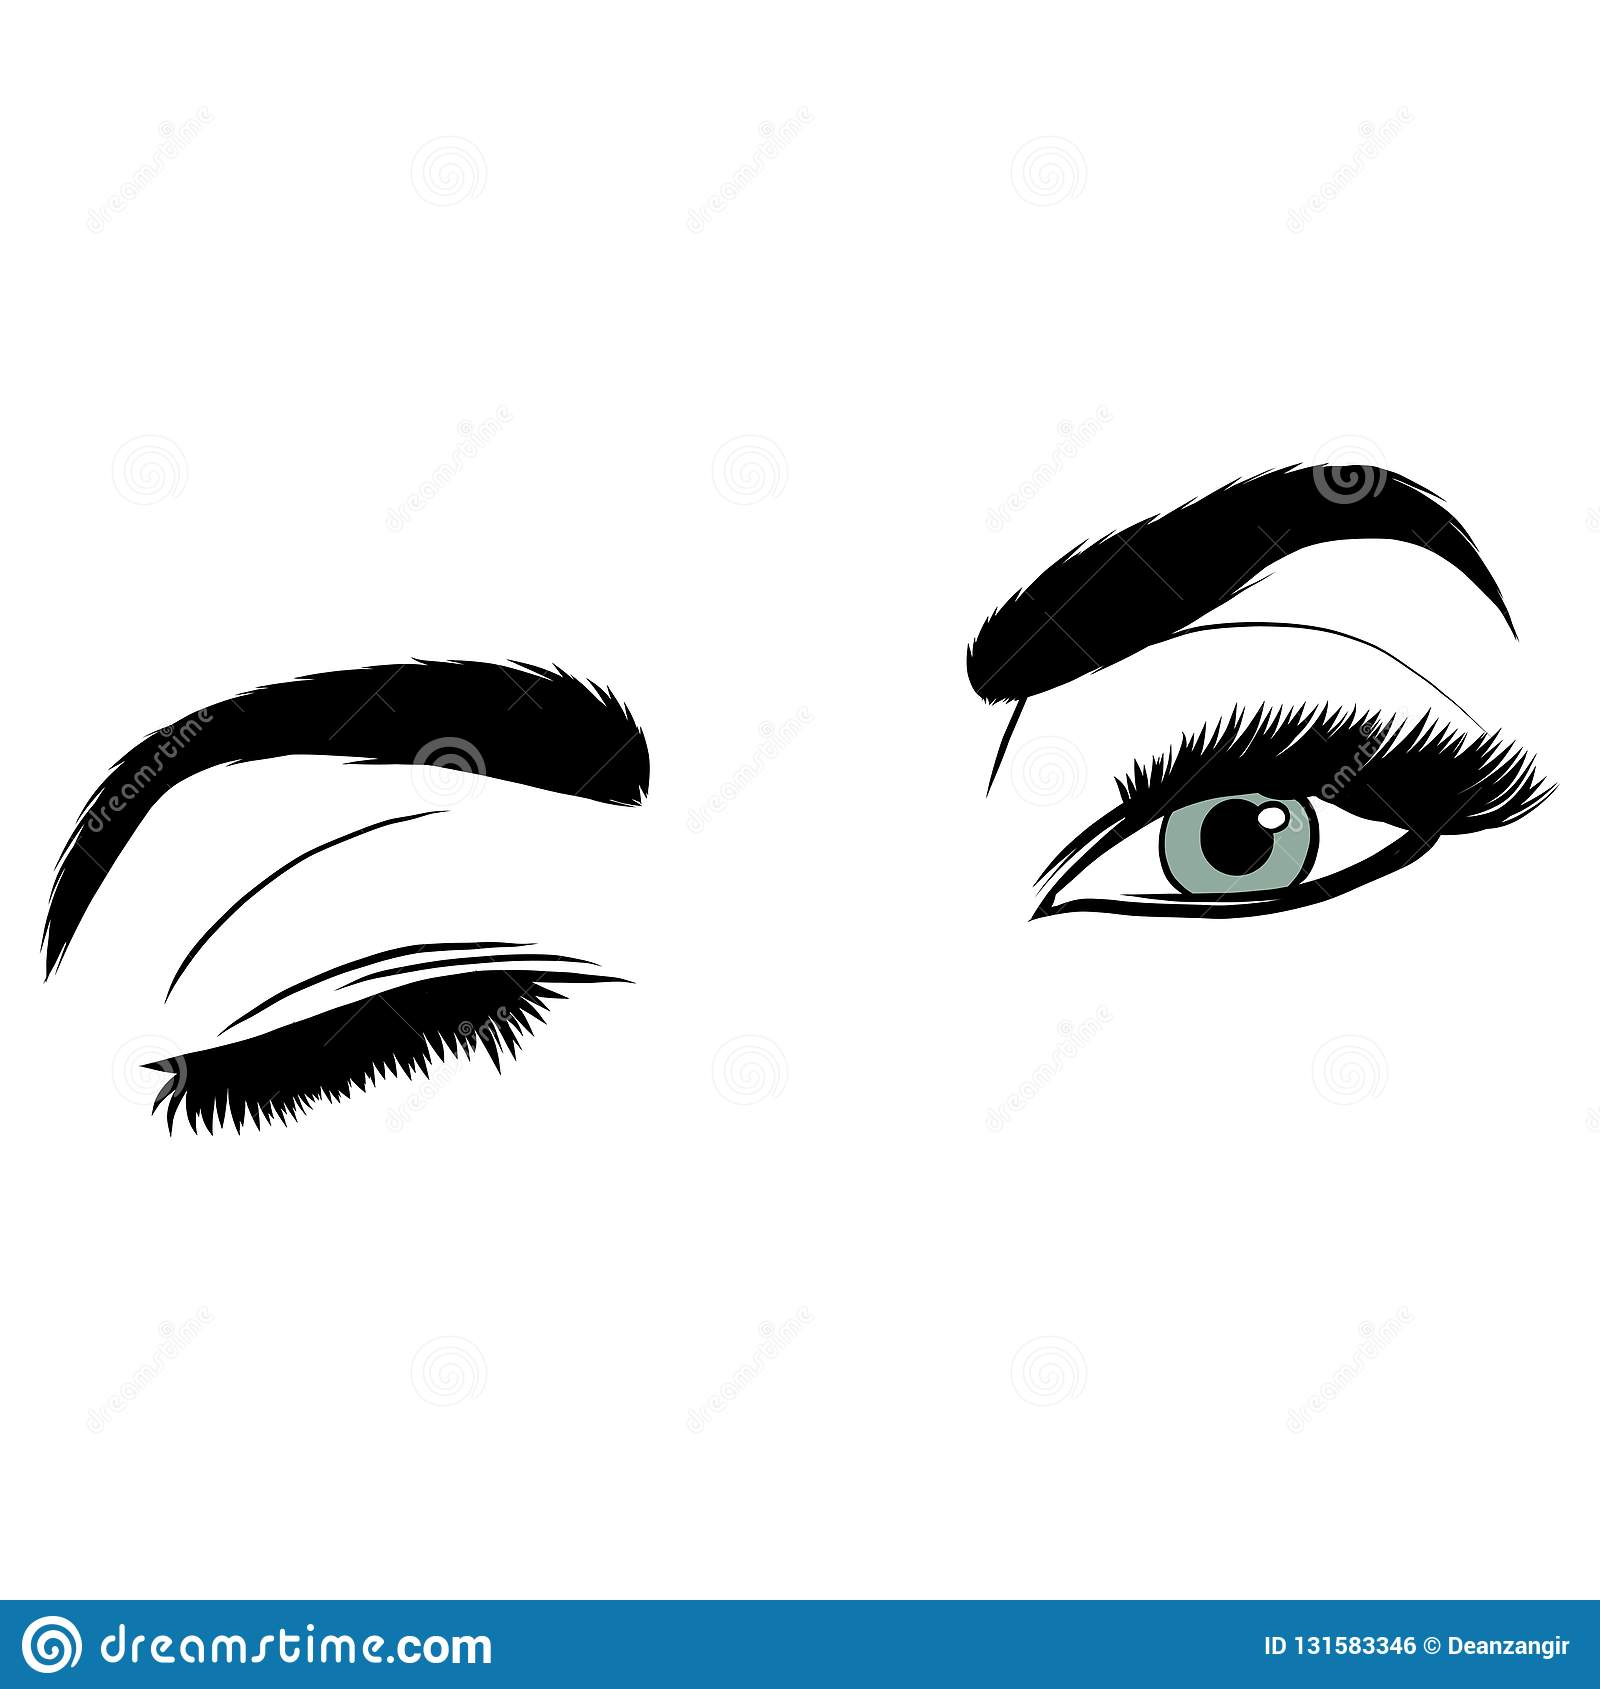 c690af09cdb Illustration with woman s eye wink, eyebrows and eyelashes. Makeup Look.  Tattoo design. Logo for brow bar or lash salon.